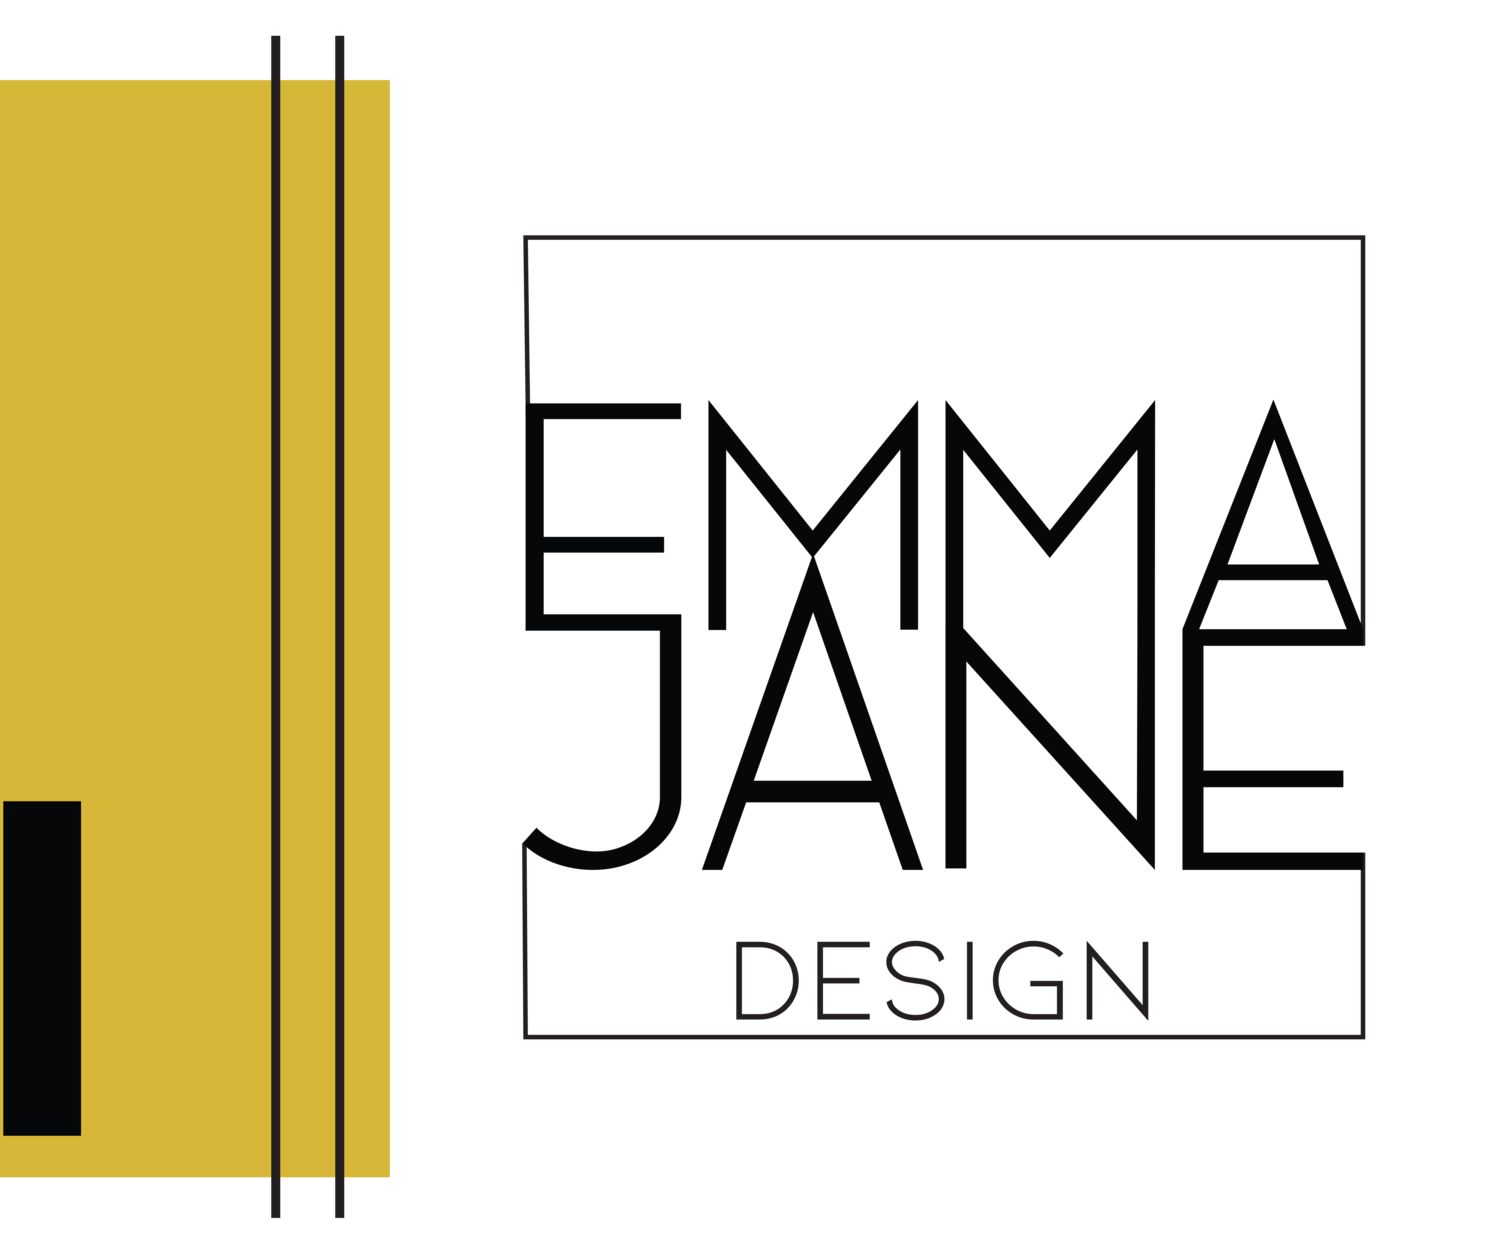 EMMA JANE DESIGN